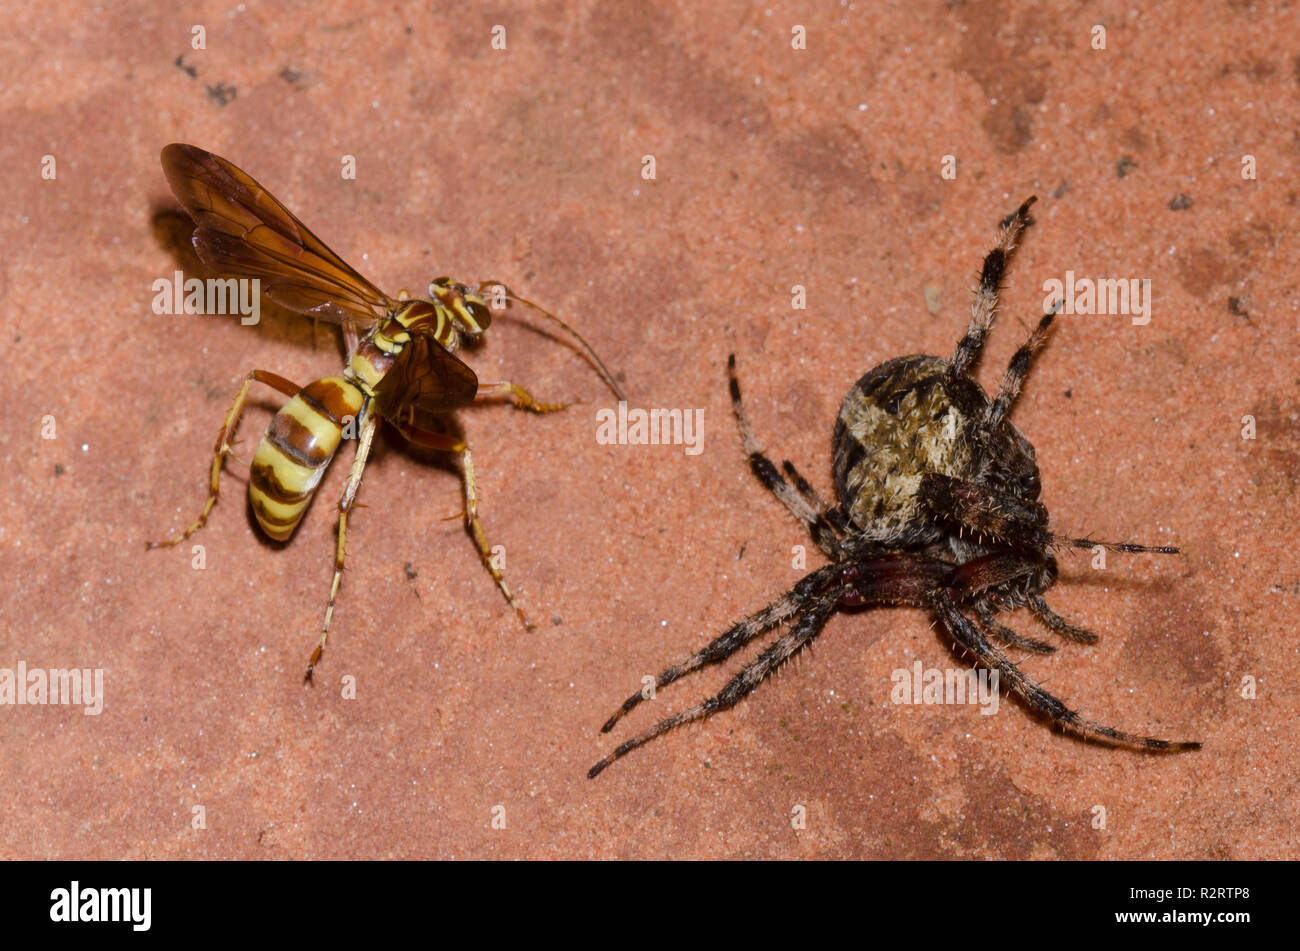 Spider Wasp, Poecilopompilus interruptus, female with paralyzed Spotted Orb Weaver, Neoscona crucifera, adult female prey - Stock Image